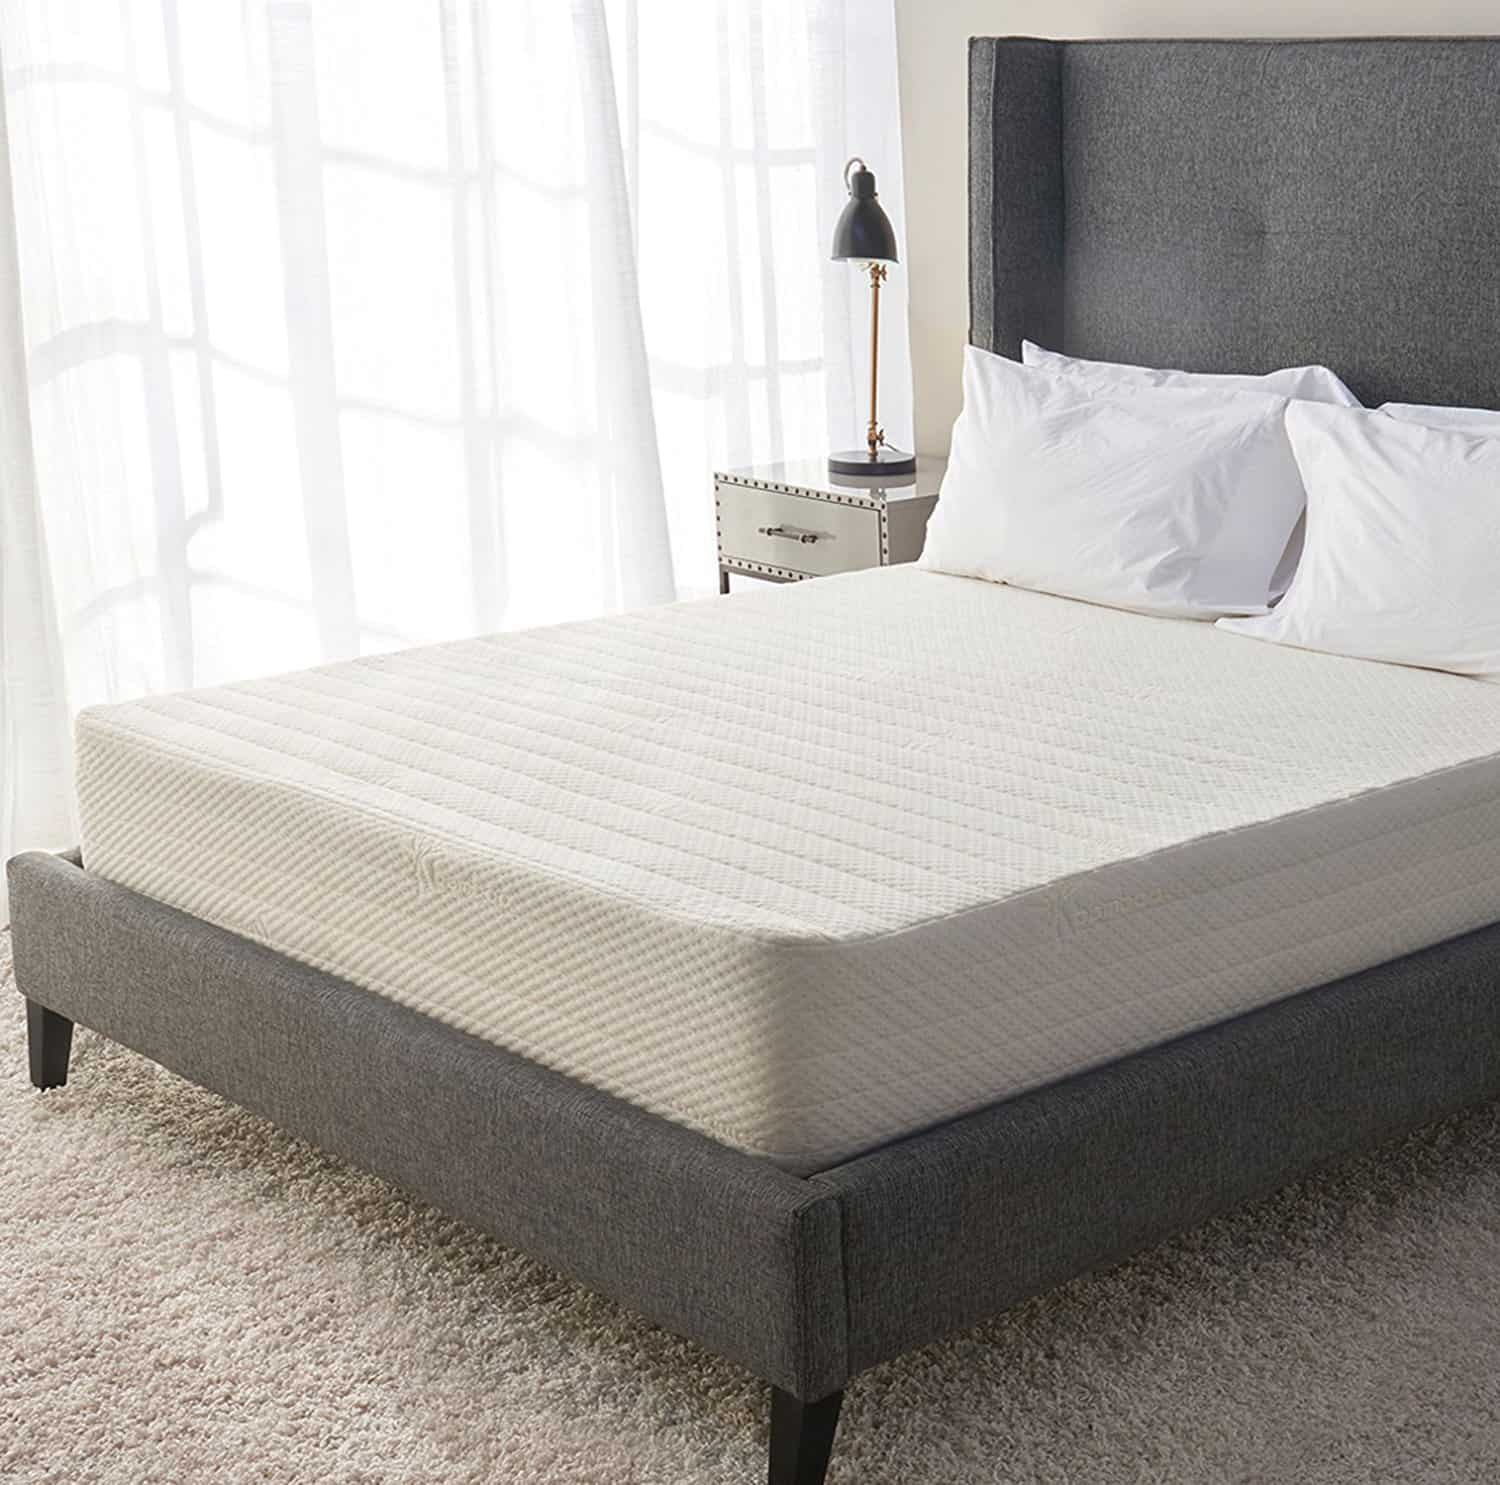 10 Best Mattress For Side Sleepers  Buying Guide 2019